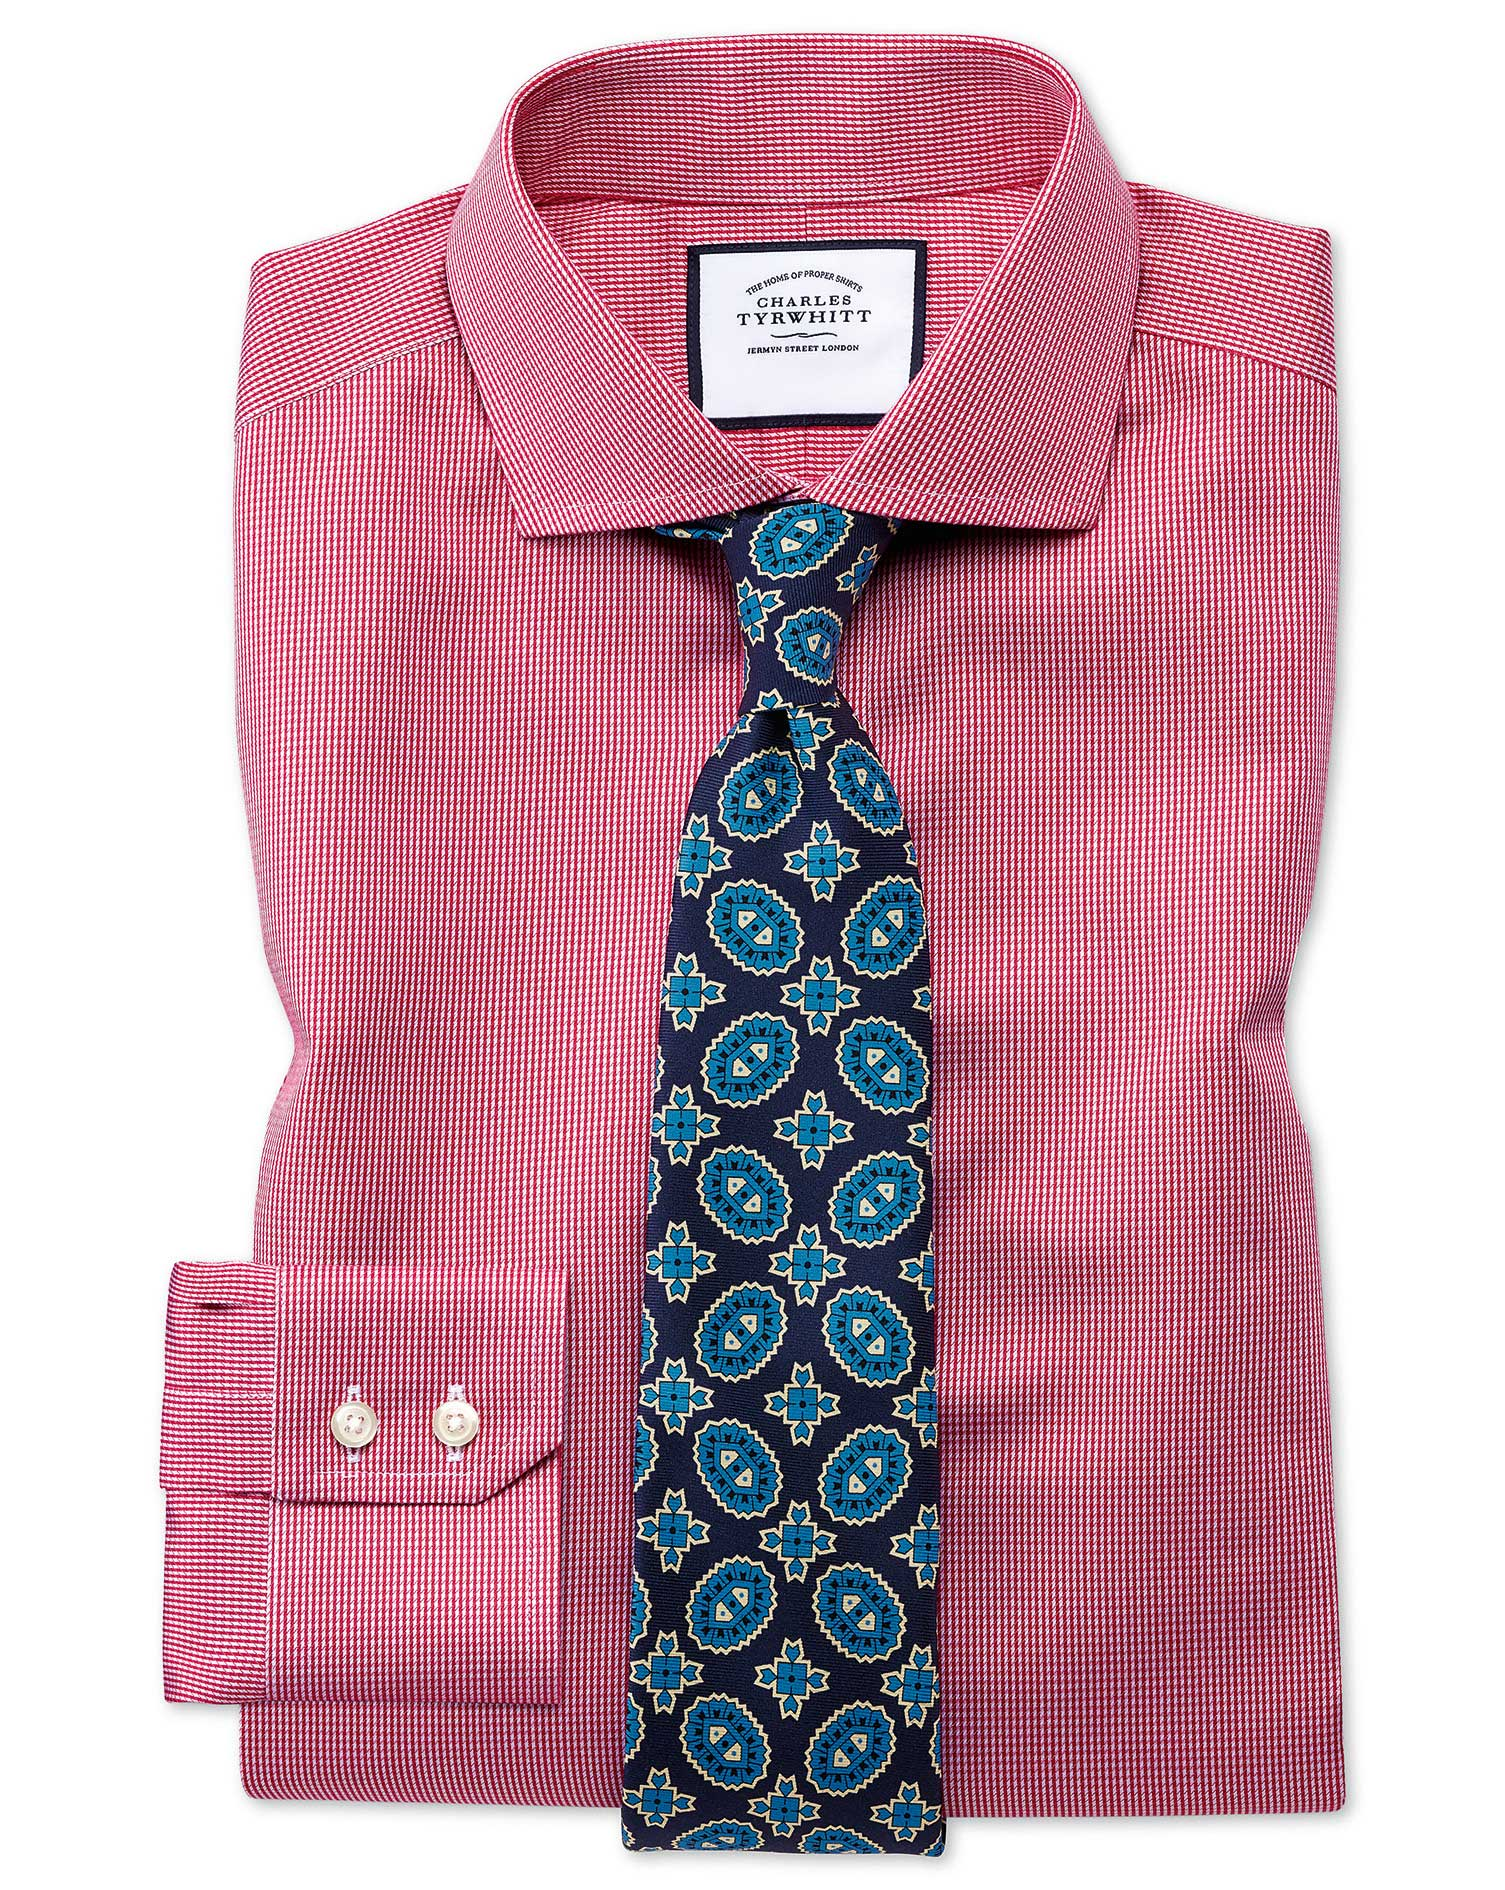 Extra Slim Fit Cutaway Collar Non-Iron Puppytooth Bright Pink Cotton Formal Shirt Double Cuff Size 1